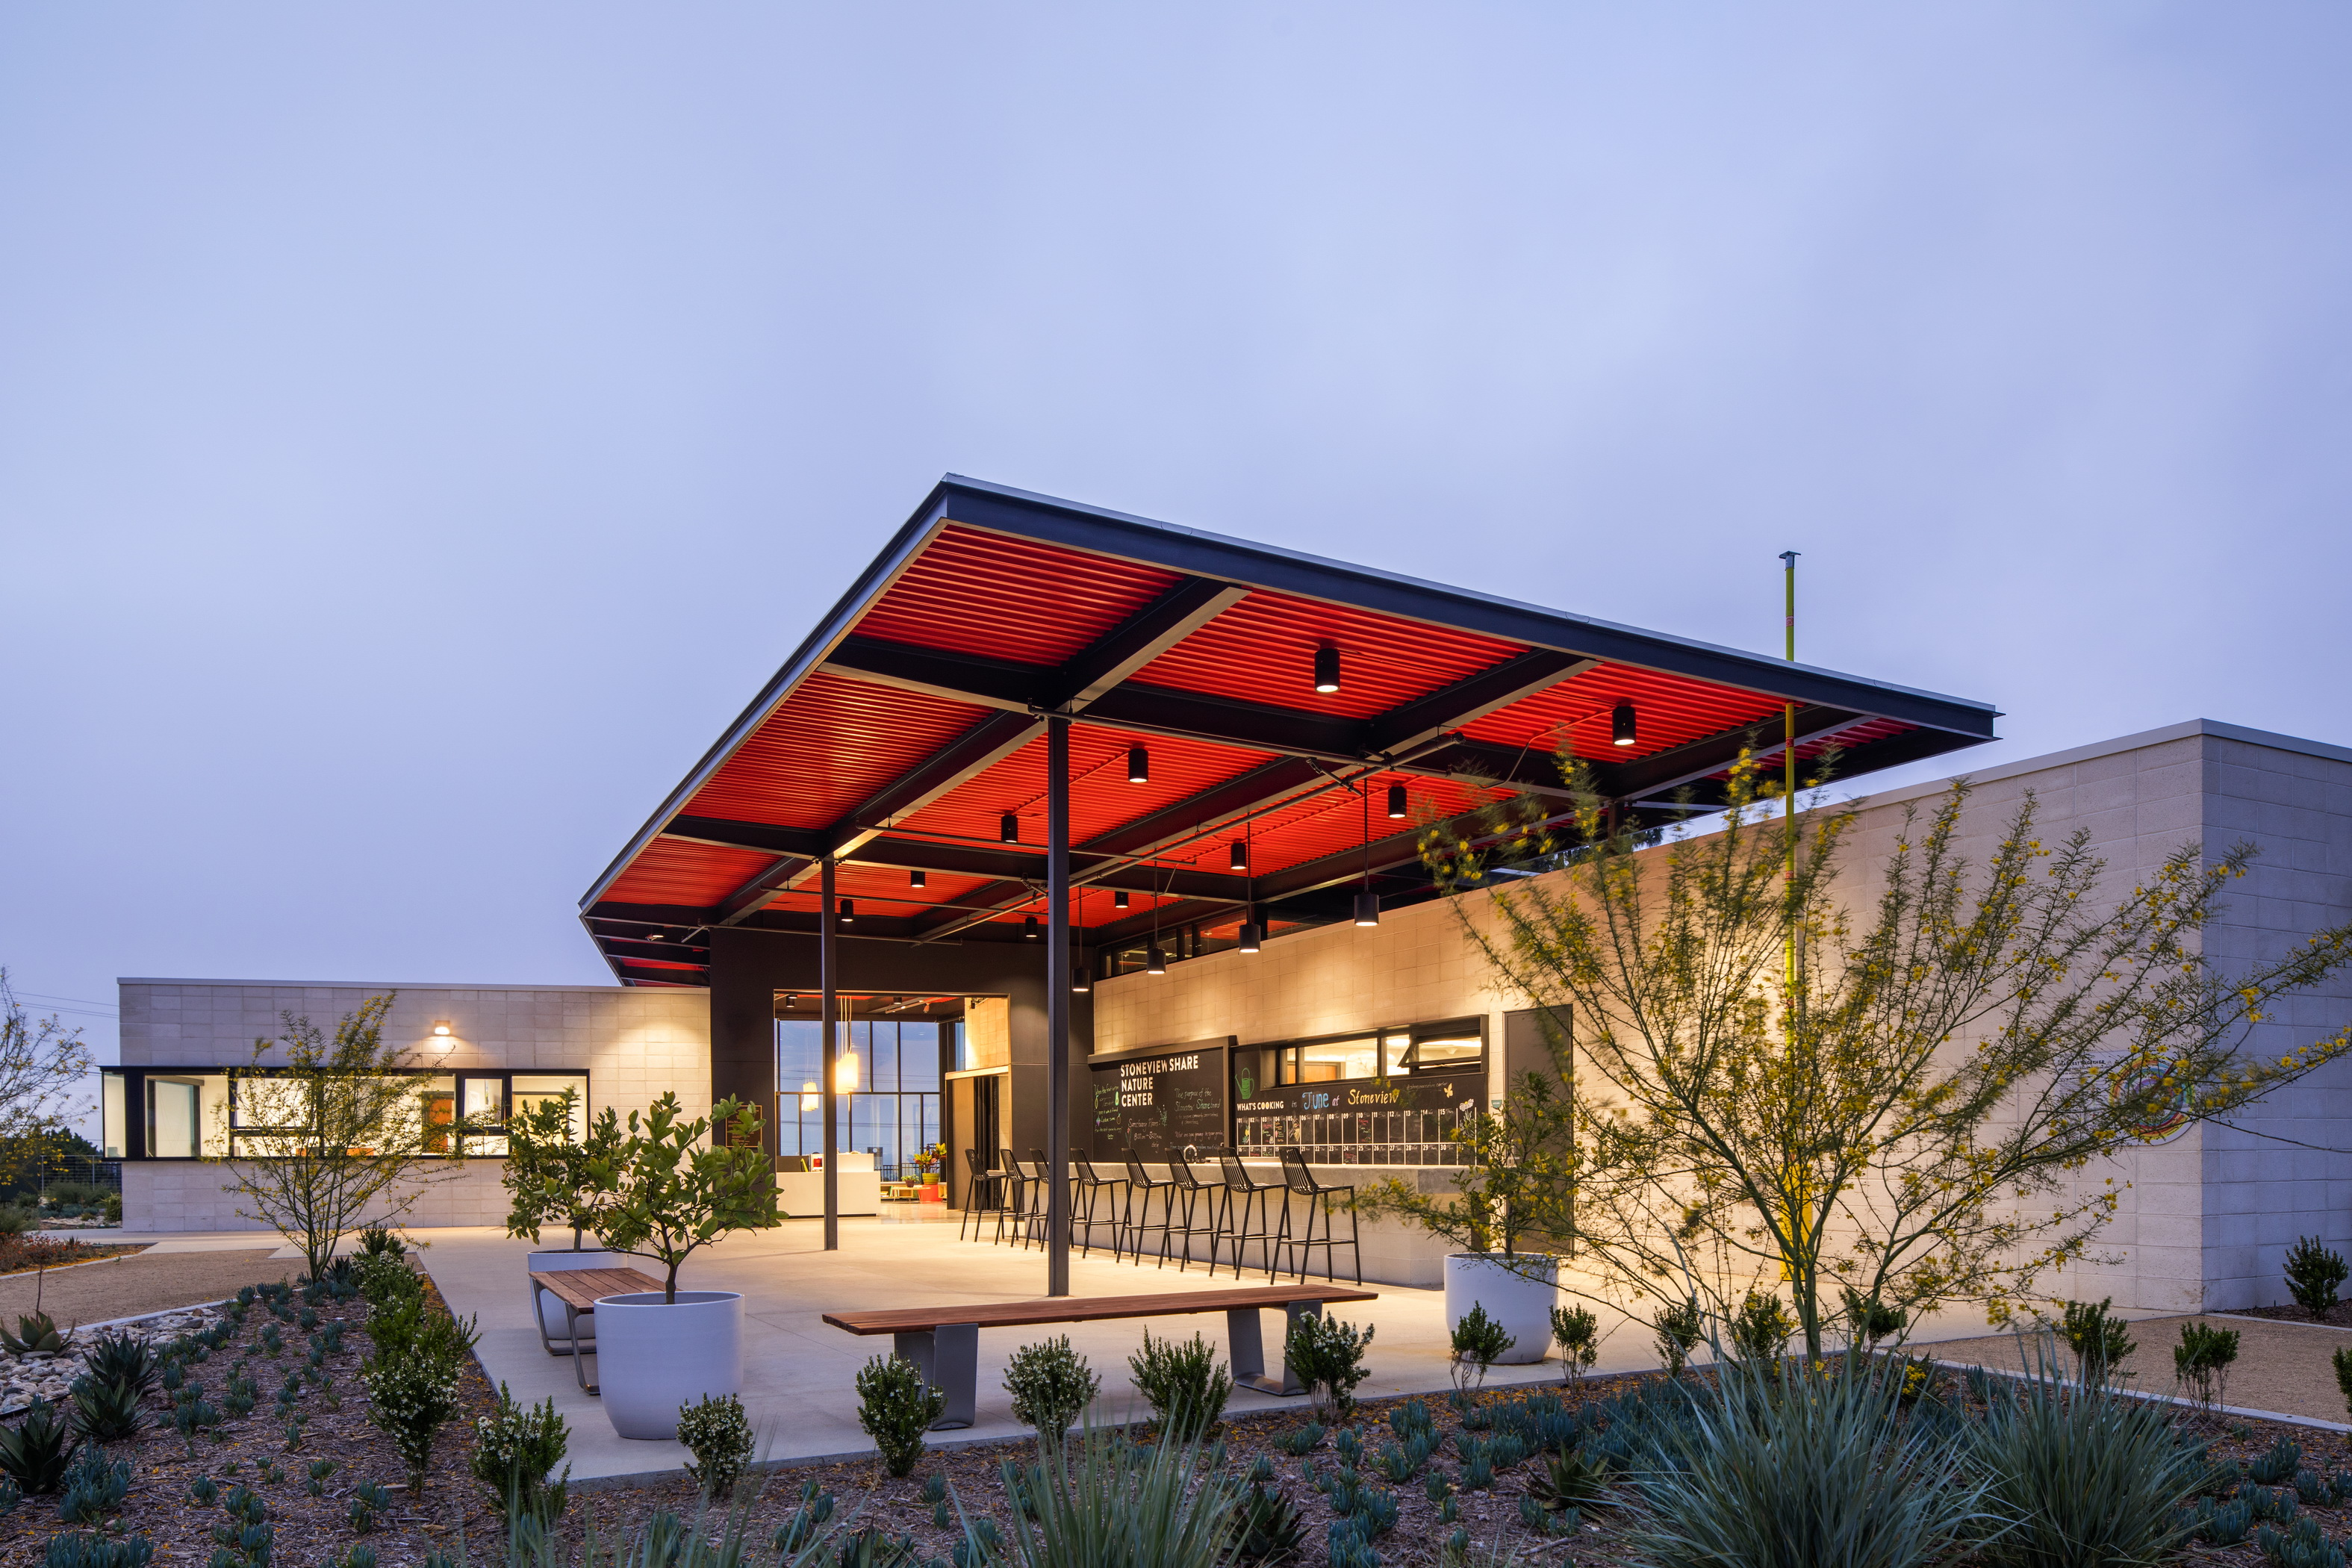 Stoneview Nature Center Architect Magazine Ehrlich Yanai Rhee Chaney Architects Culver City